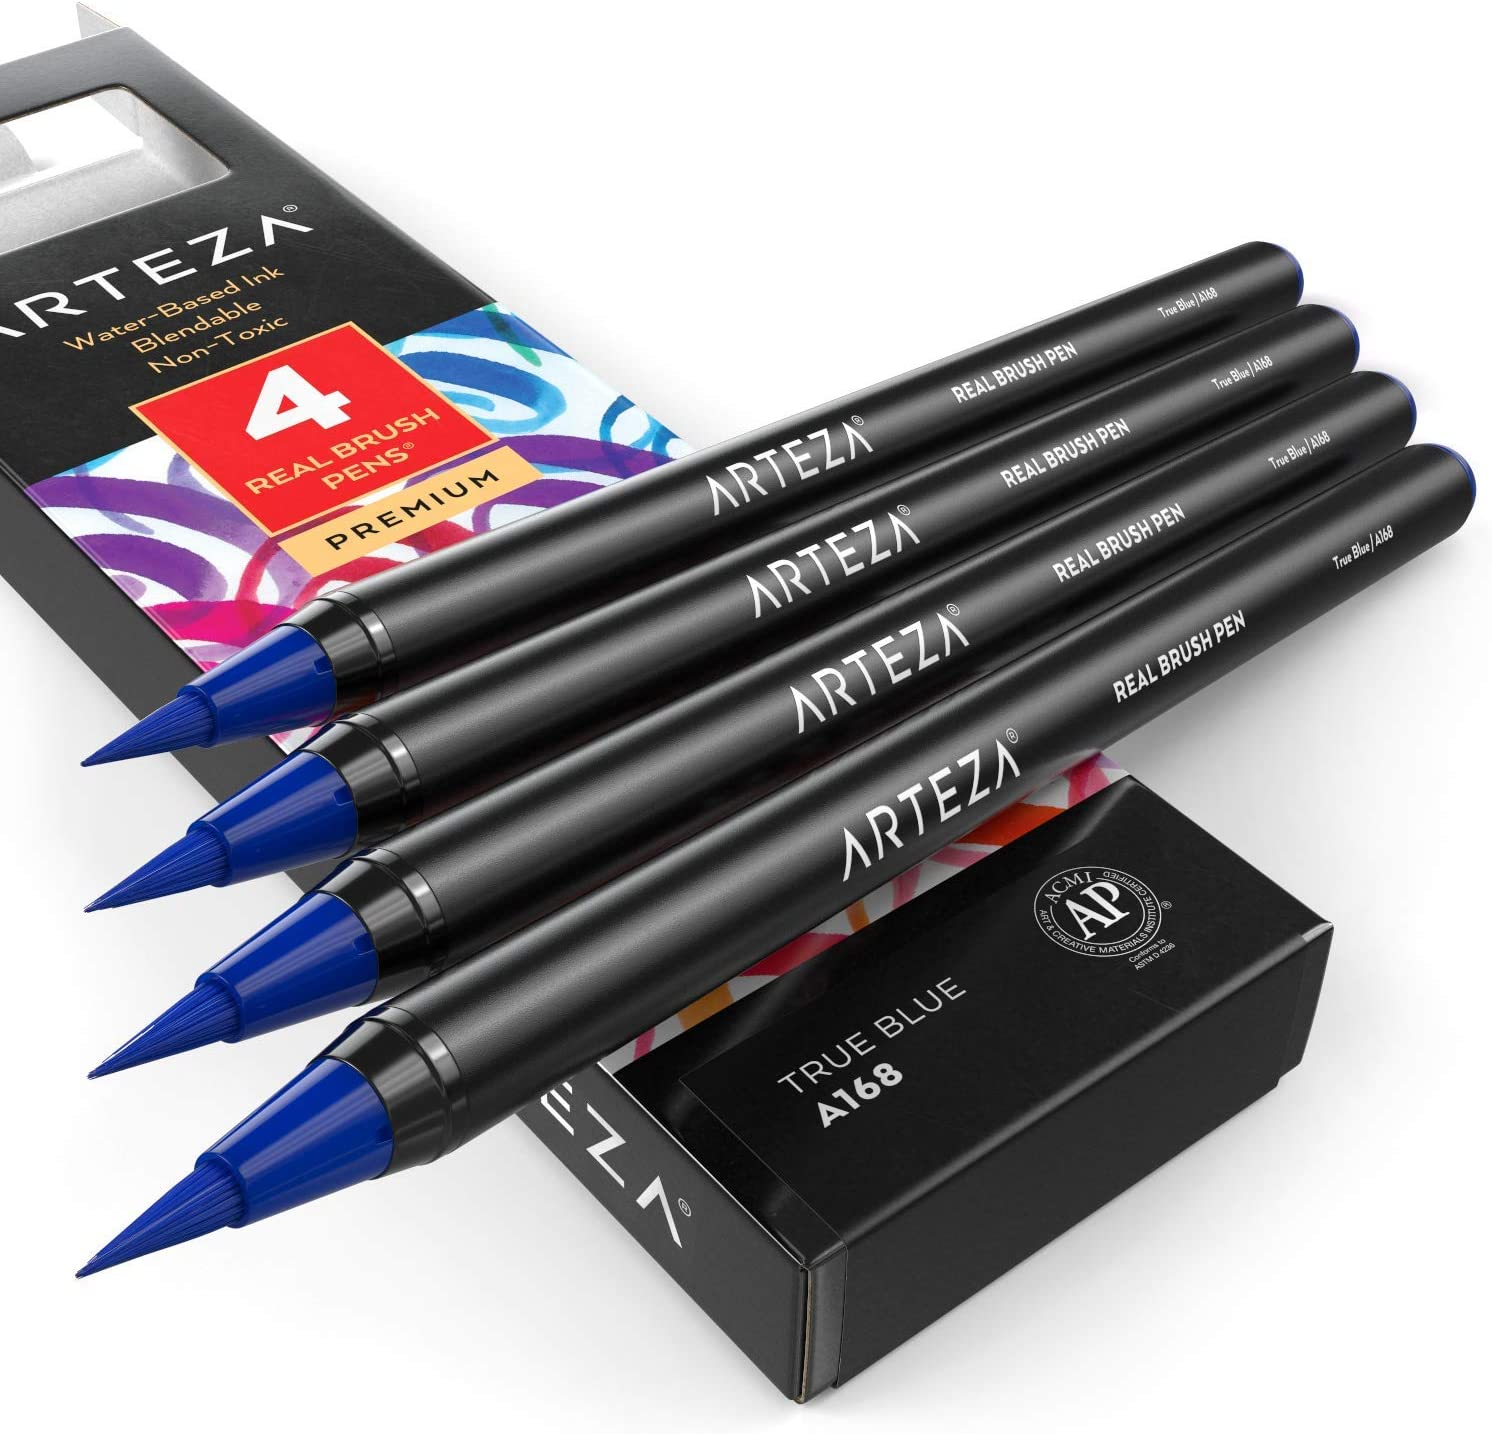 Arteza Real Brush Pens (A168 True Blue), Pack of 4, for Watercolor Painting with Flexible Nylon Brush Tips, Paint Markers for Coloring, Calligraphy and Drawing